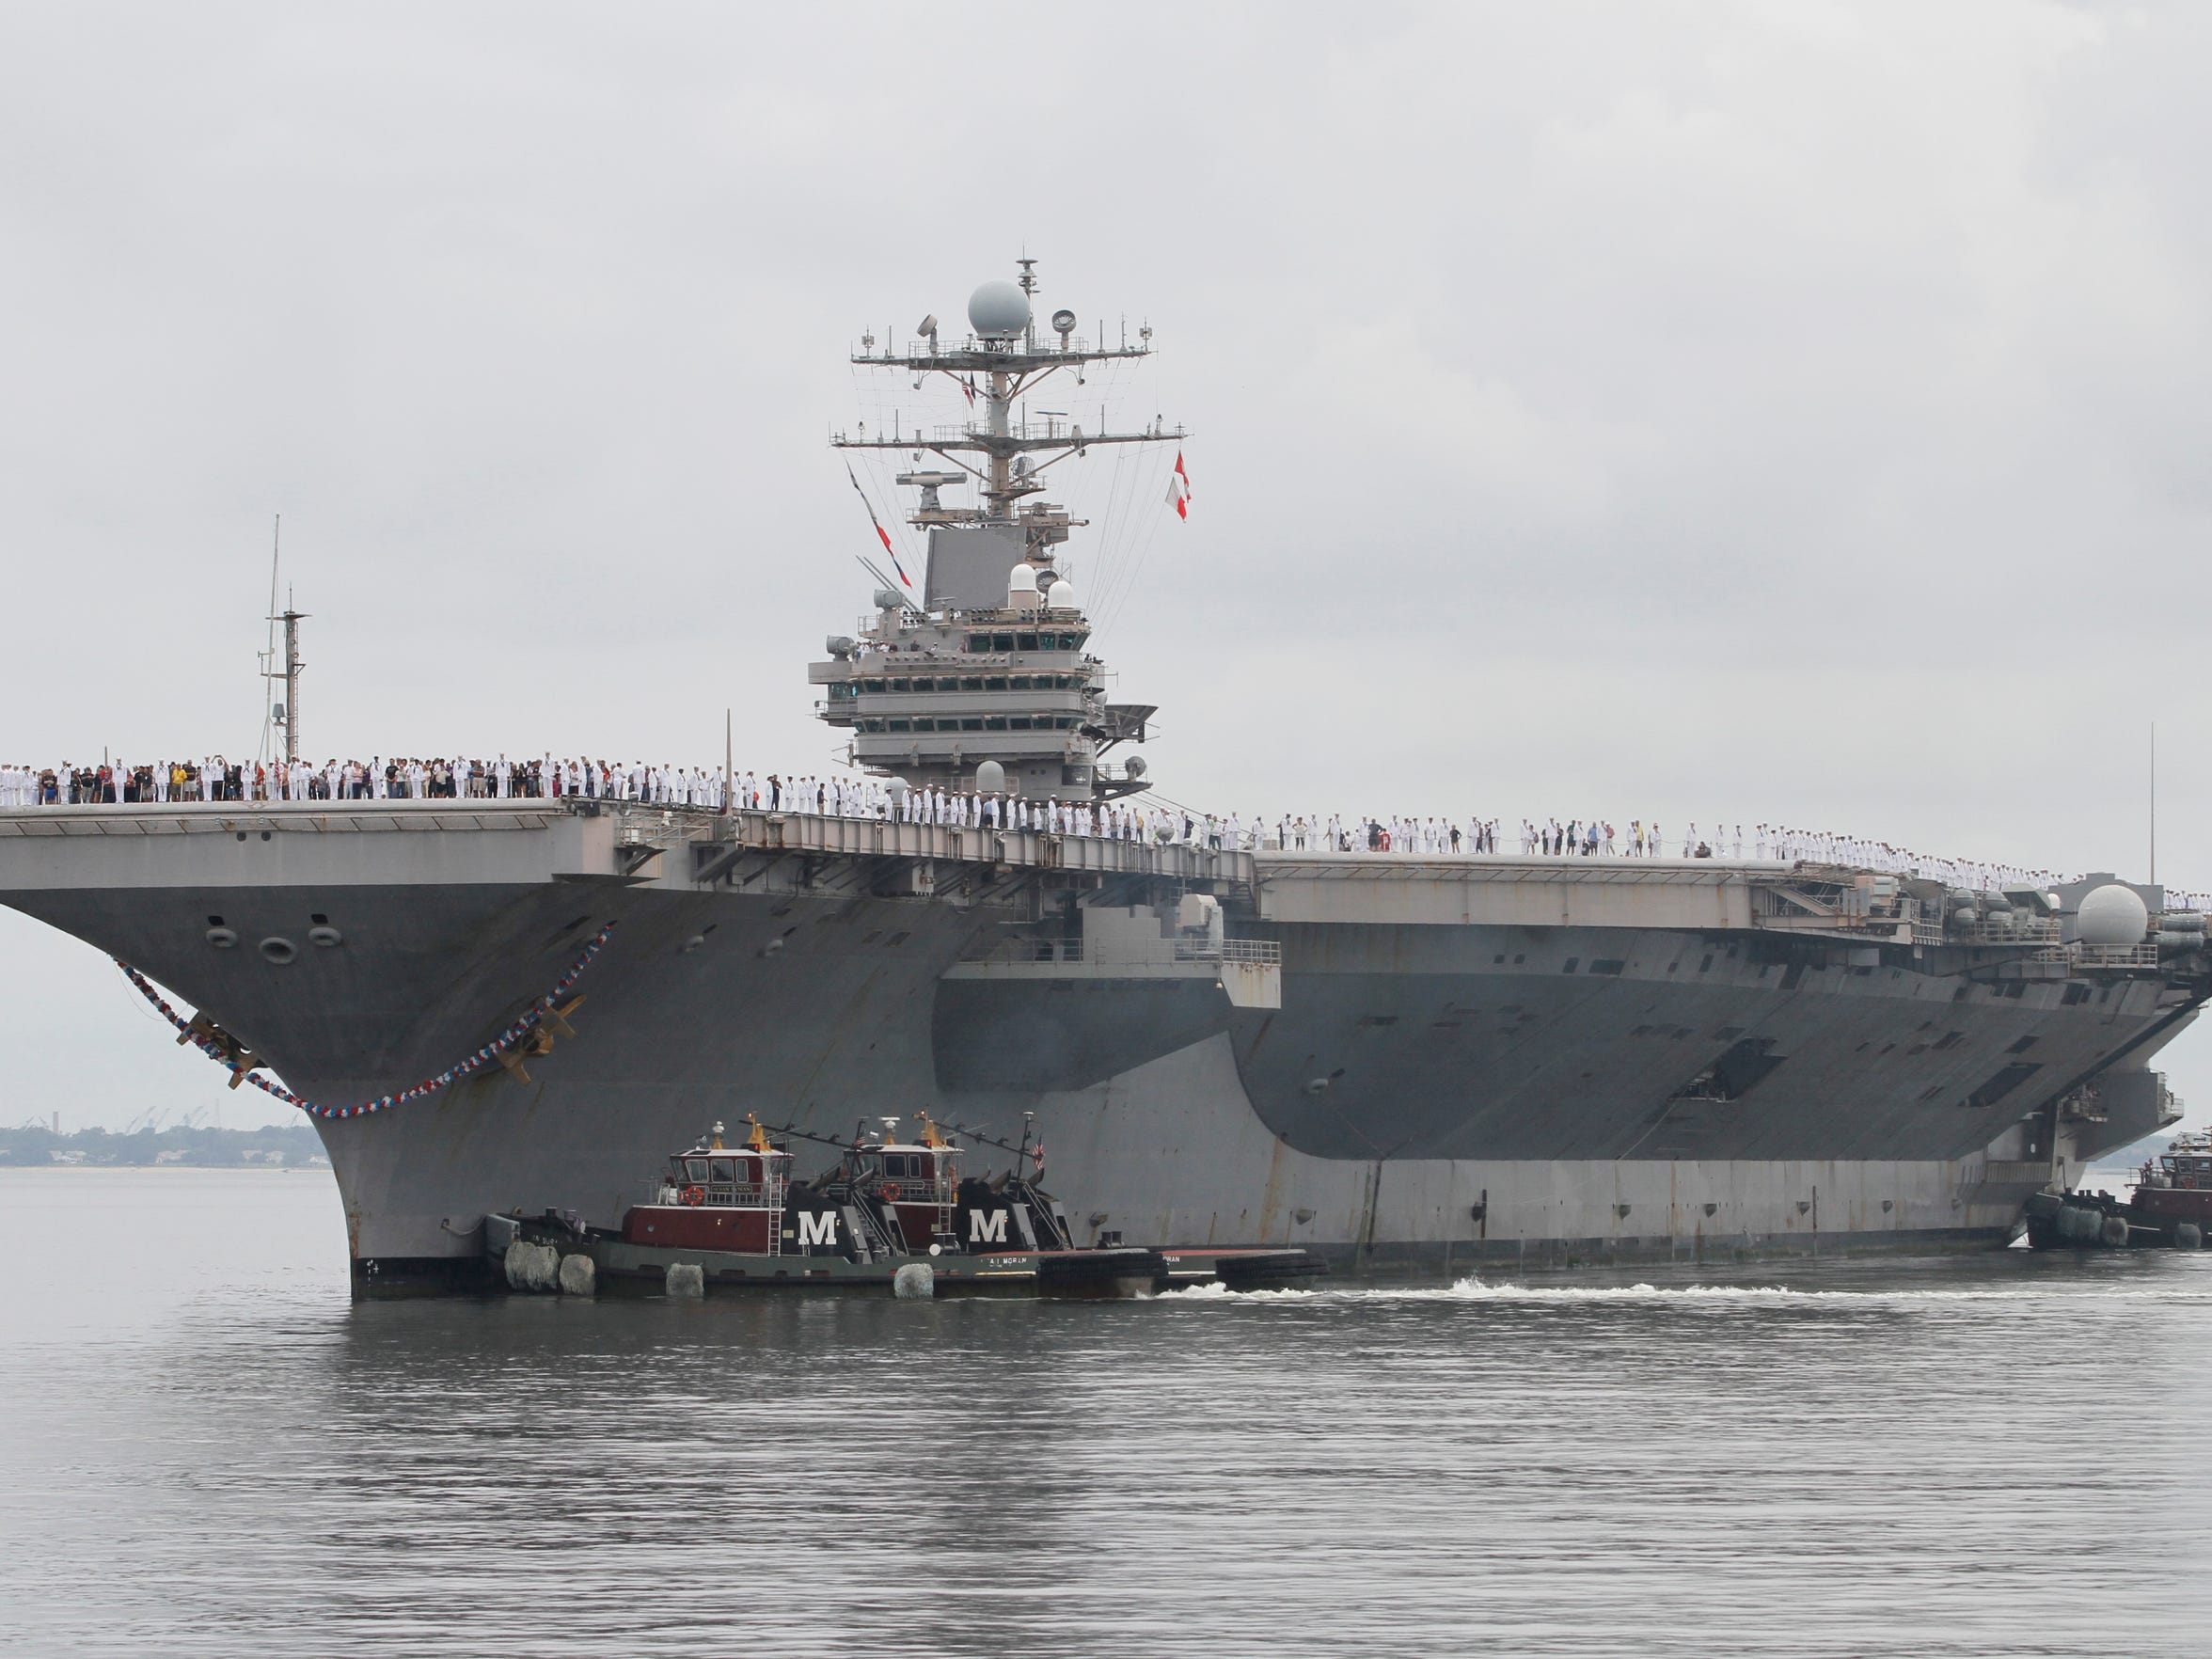 The nuclear-powered aircraft carrier Abraham Lincoln